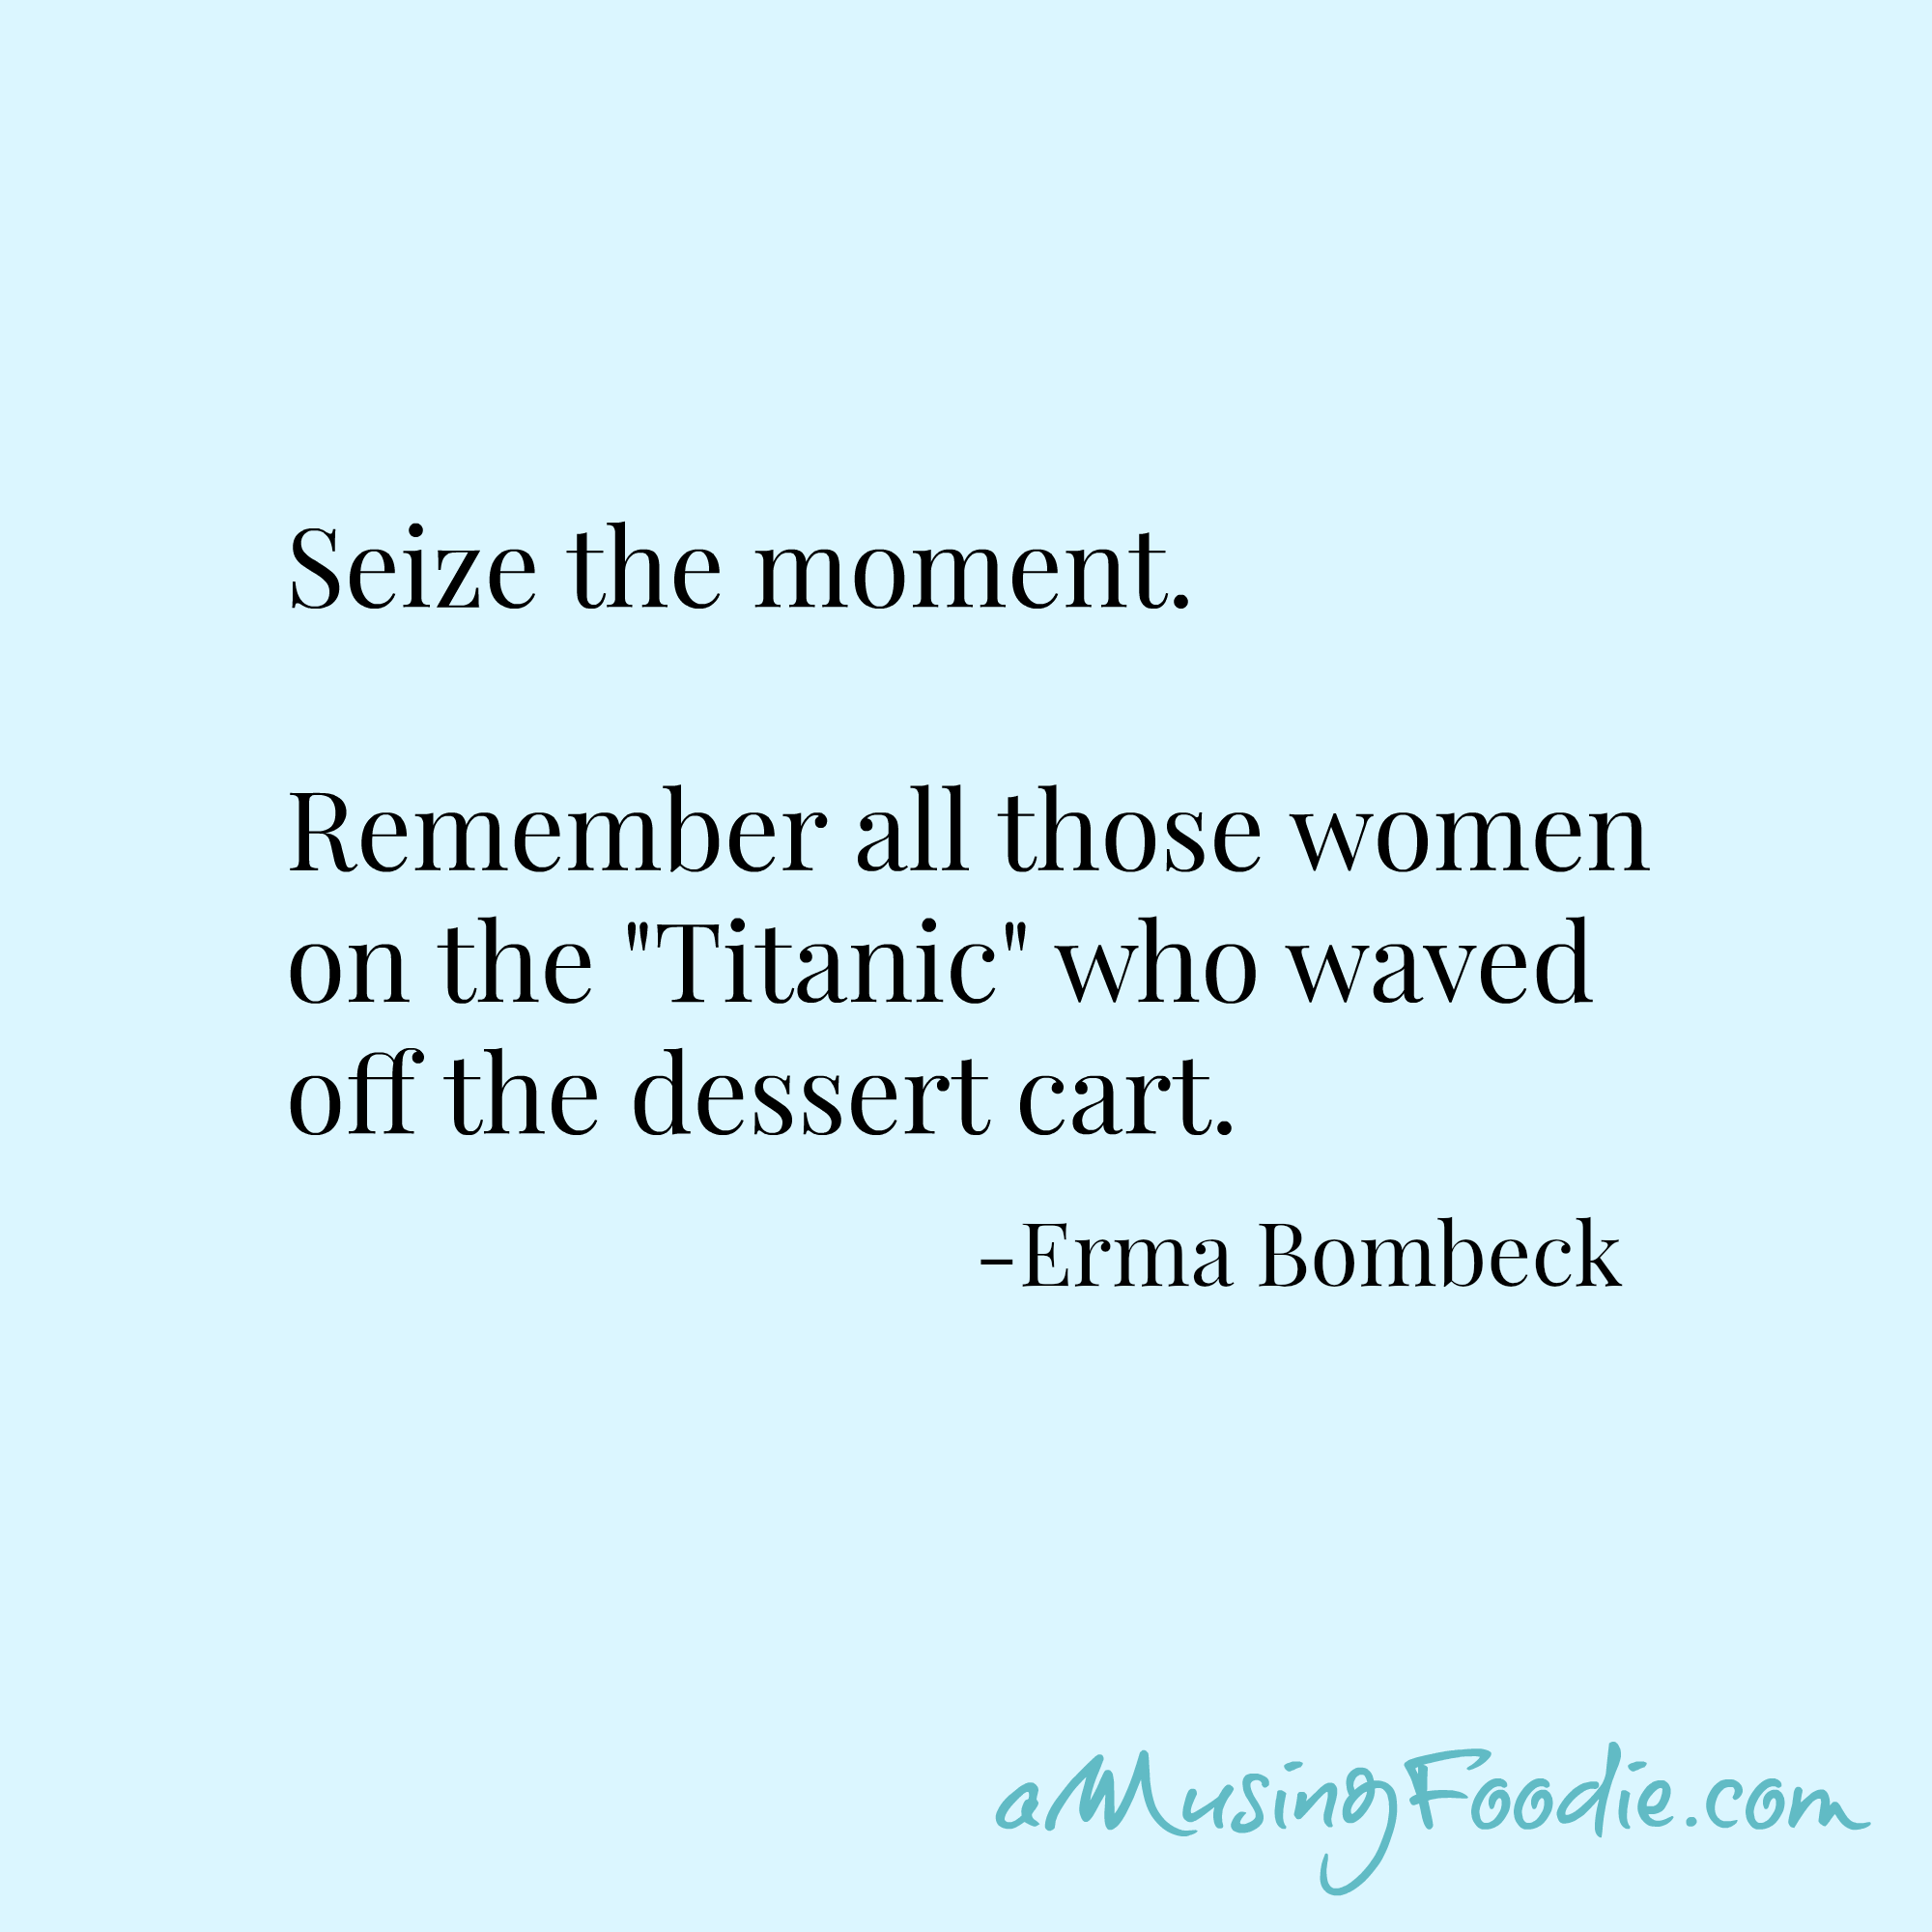 23 Delicious Food Quotes Food Quotes Funny Food Quotes Erma Bombeck Quotes